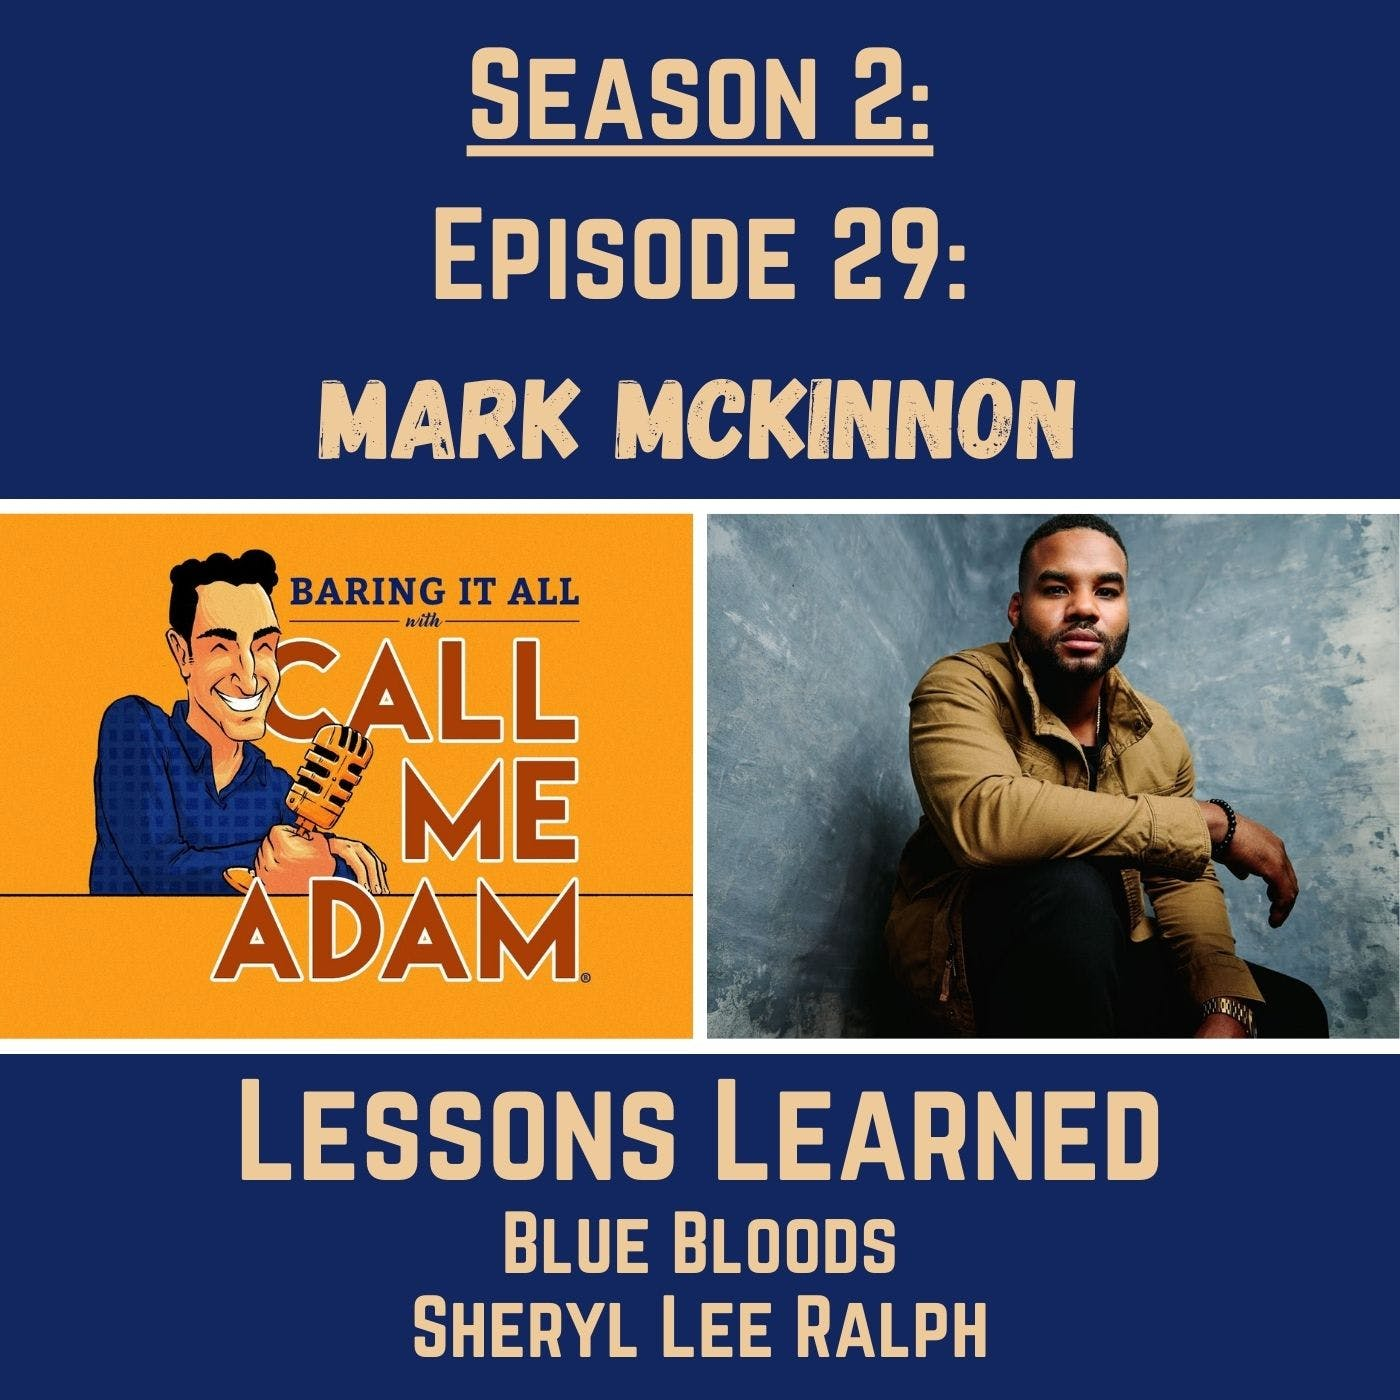 Season 2: Episode 29: Mark McKinnon Returns: Love, Lessons Learned, Sheryl Lee Ralph, Acting Lessons, Marriage, Blue Bloods